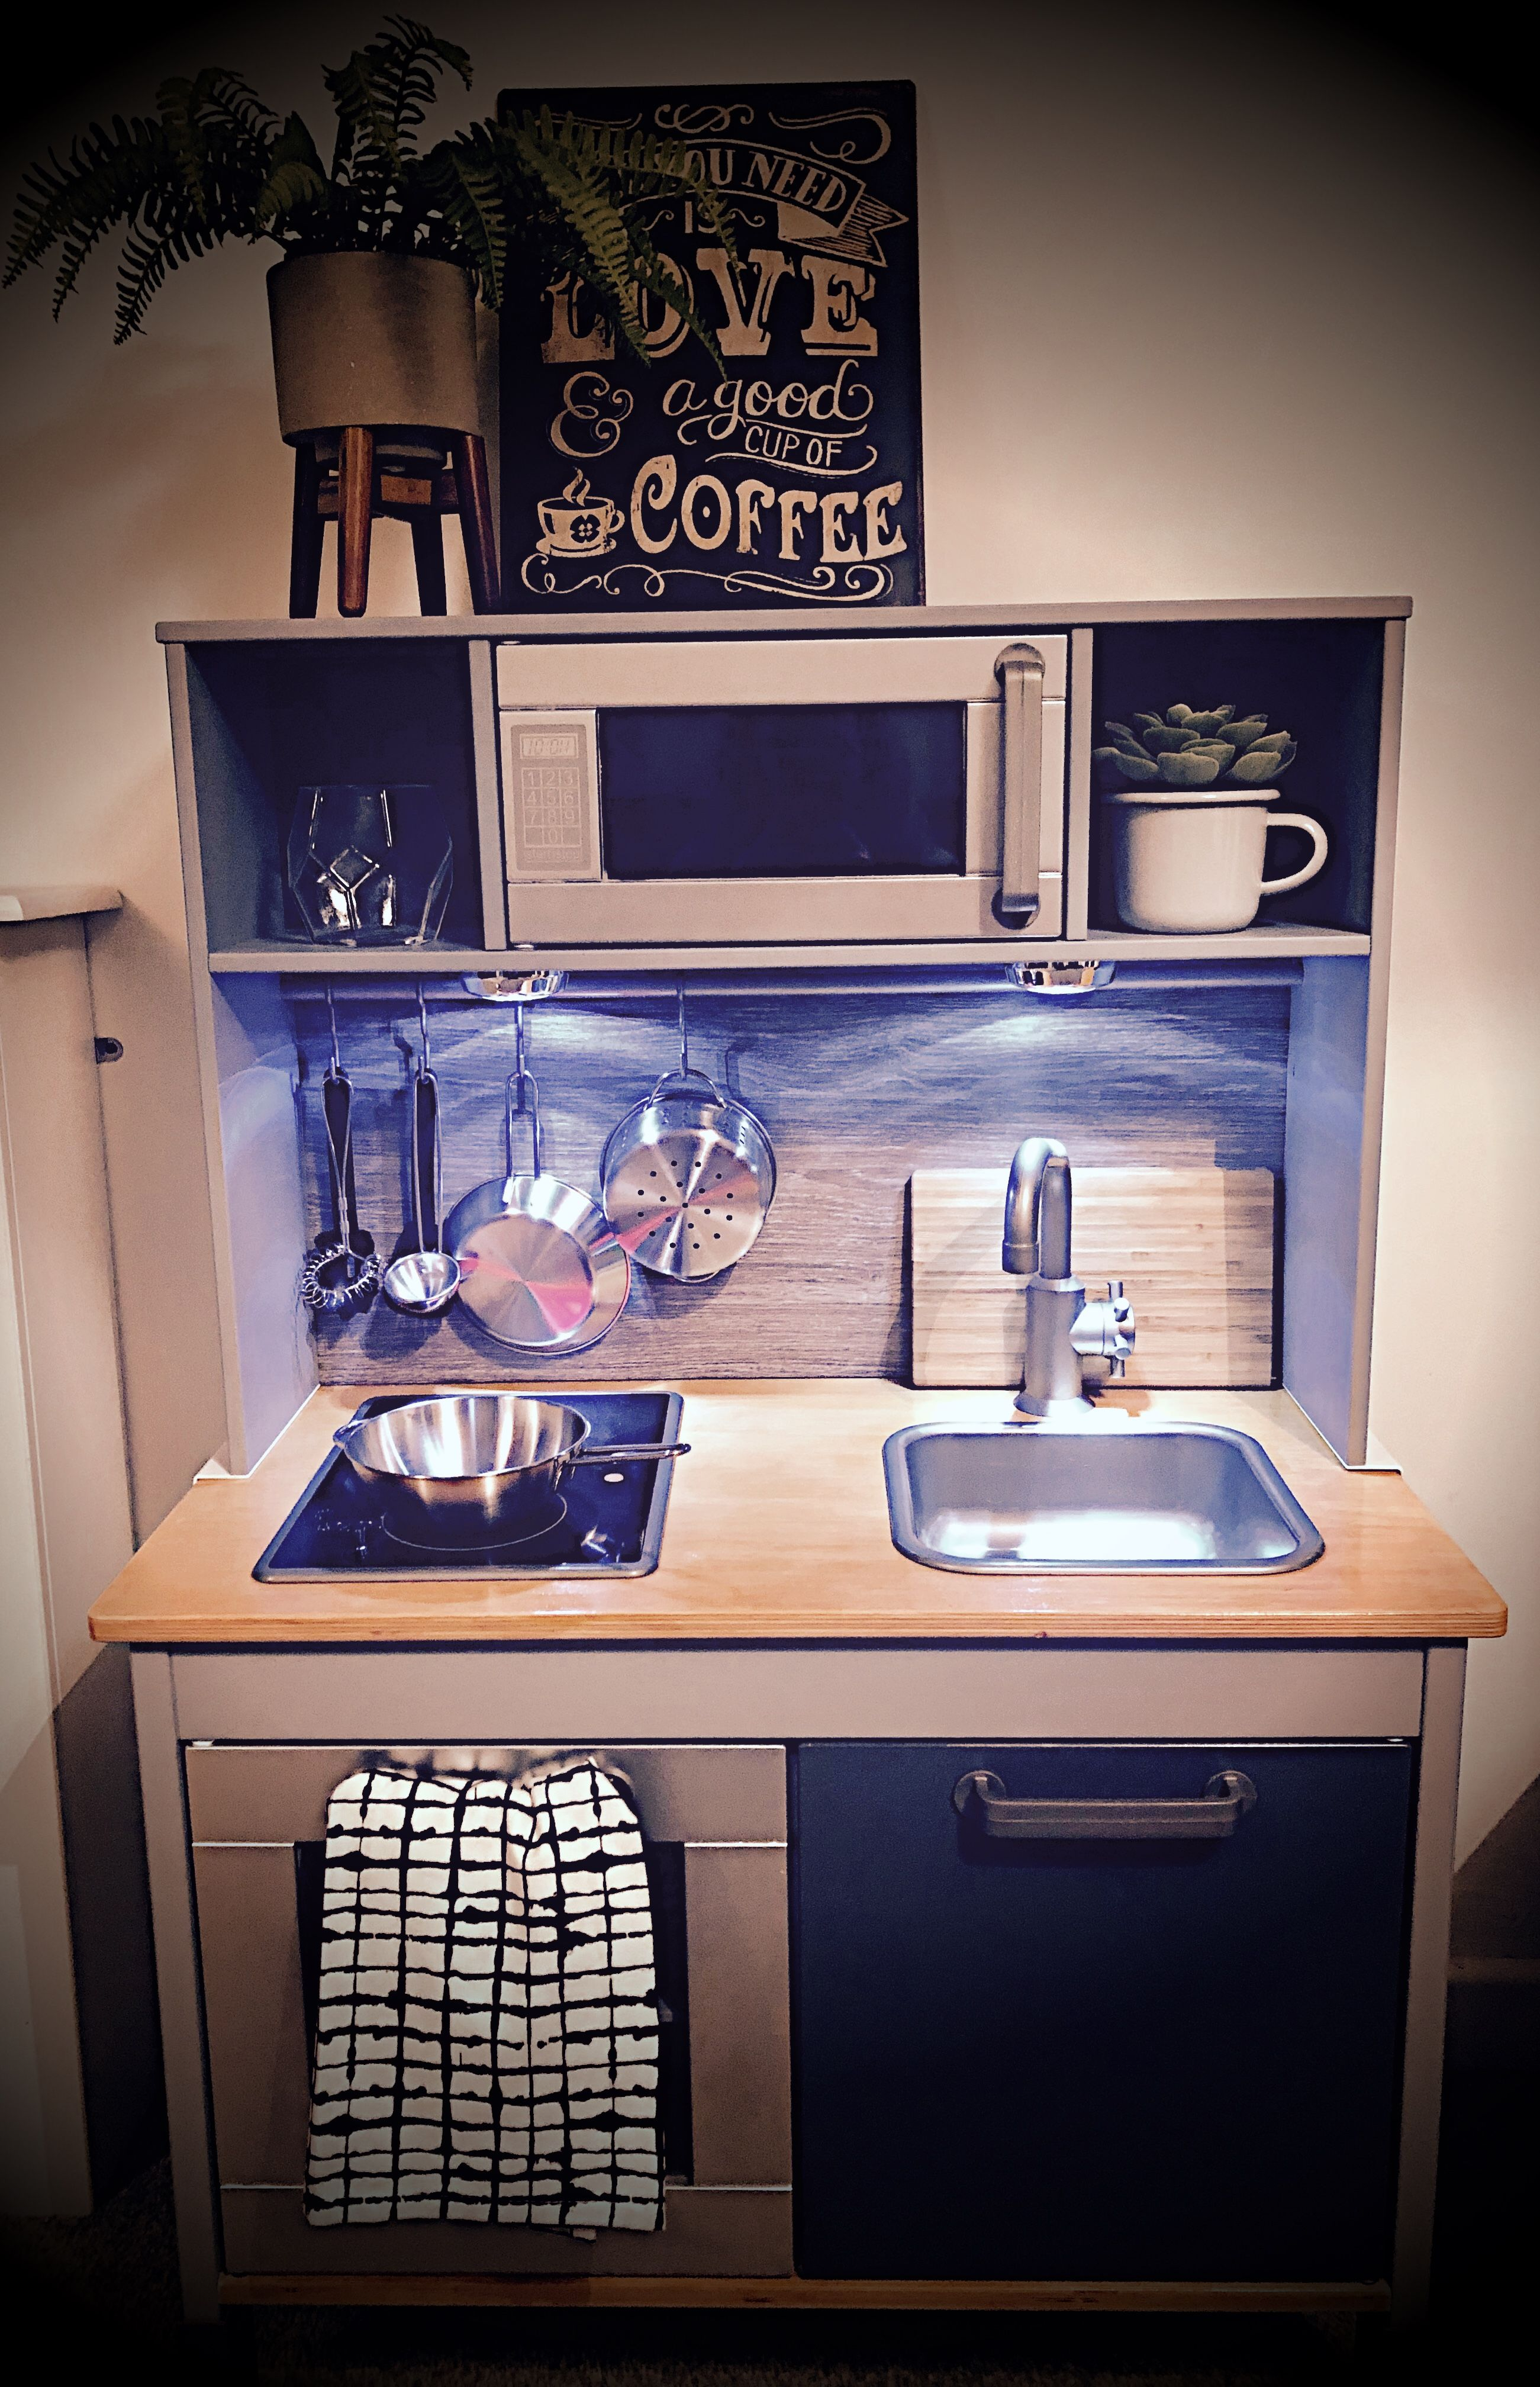 Pin by Beckyjenkins Uk on Toby's Room Kitchen appliances